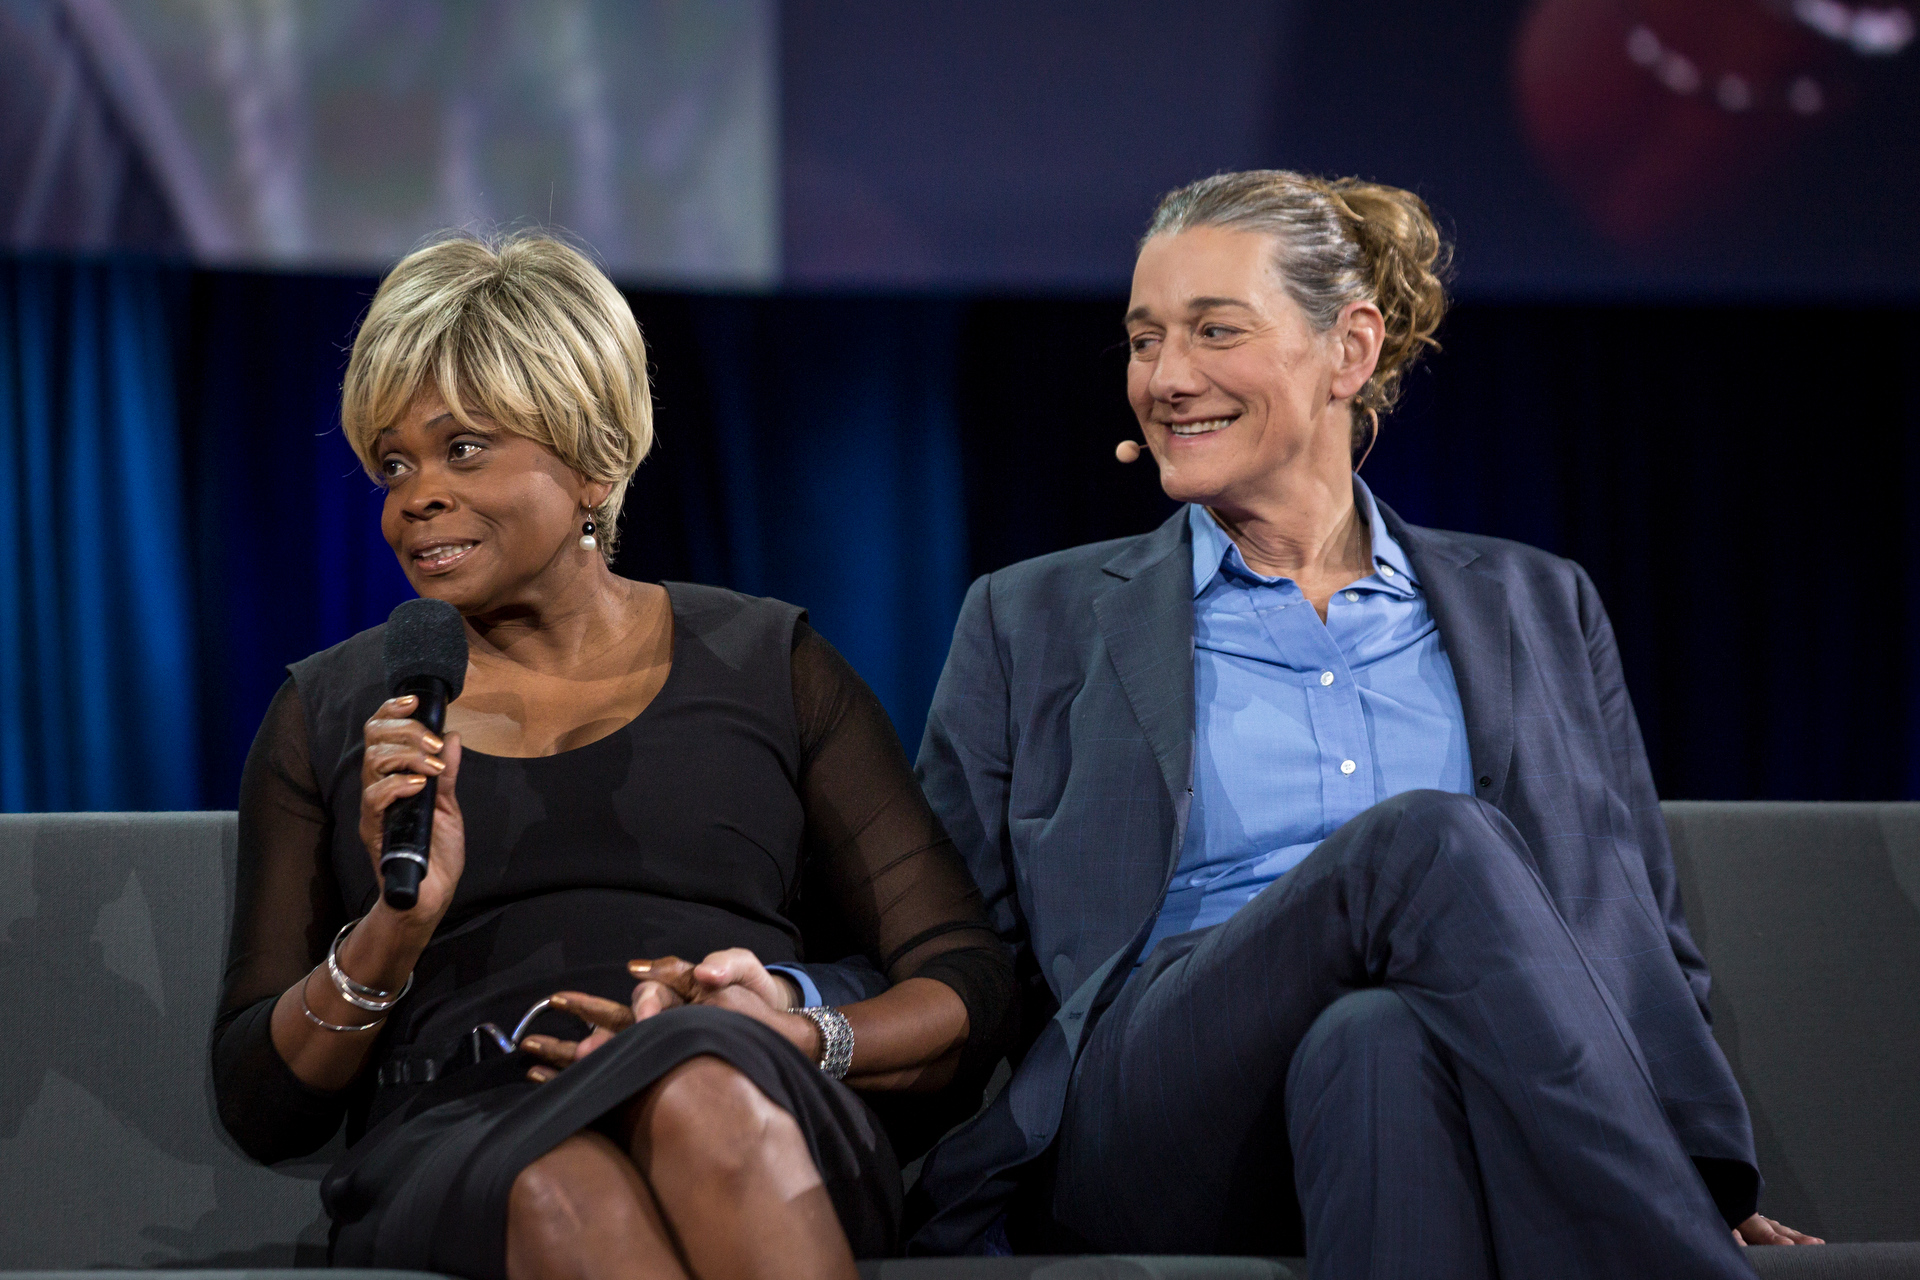 Bina Aspen and Martine Rothblatt speak at TED2015 - Truth and Dare, Session 5. Photo: Bret Hartman/TED